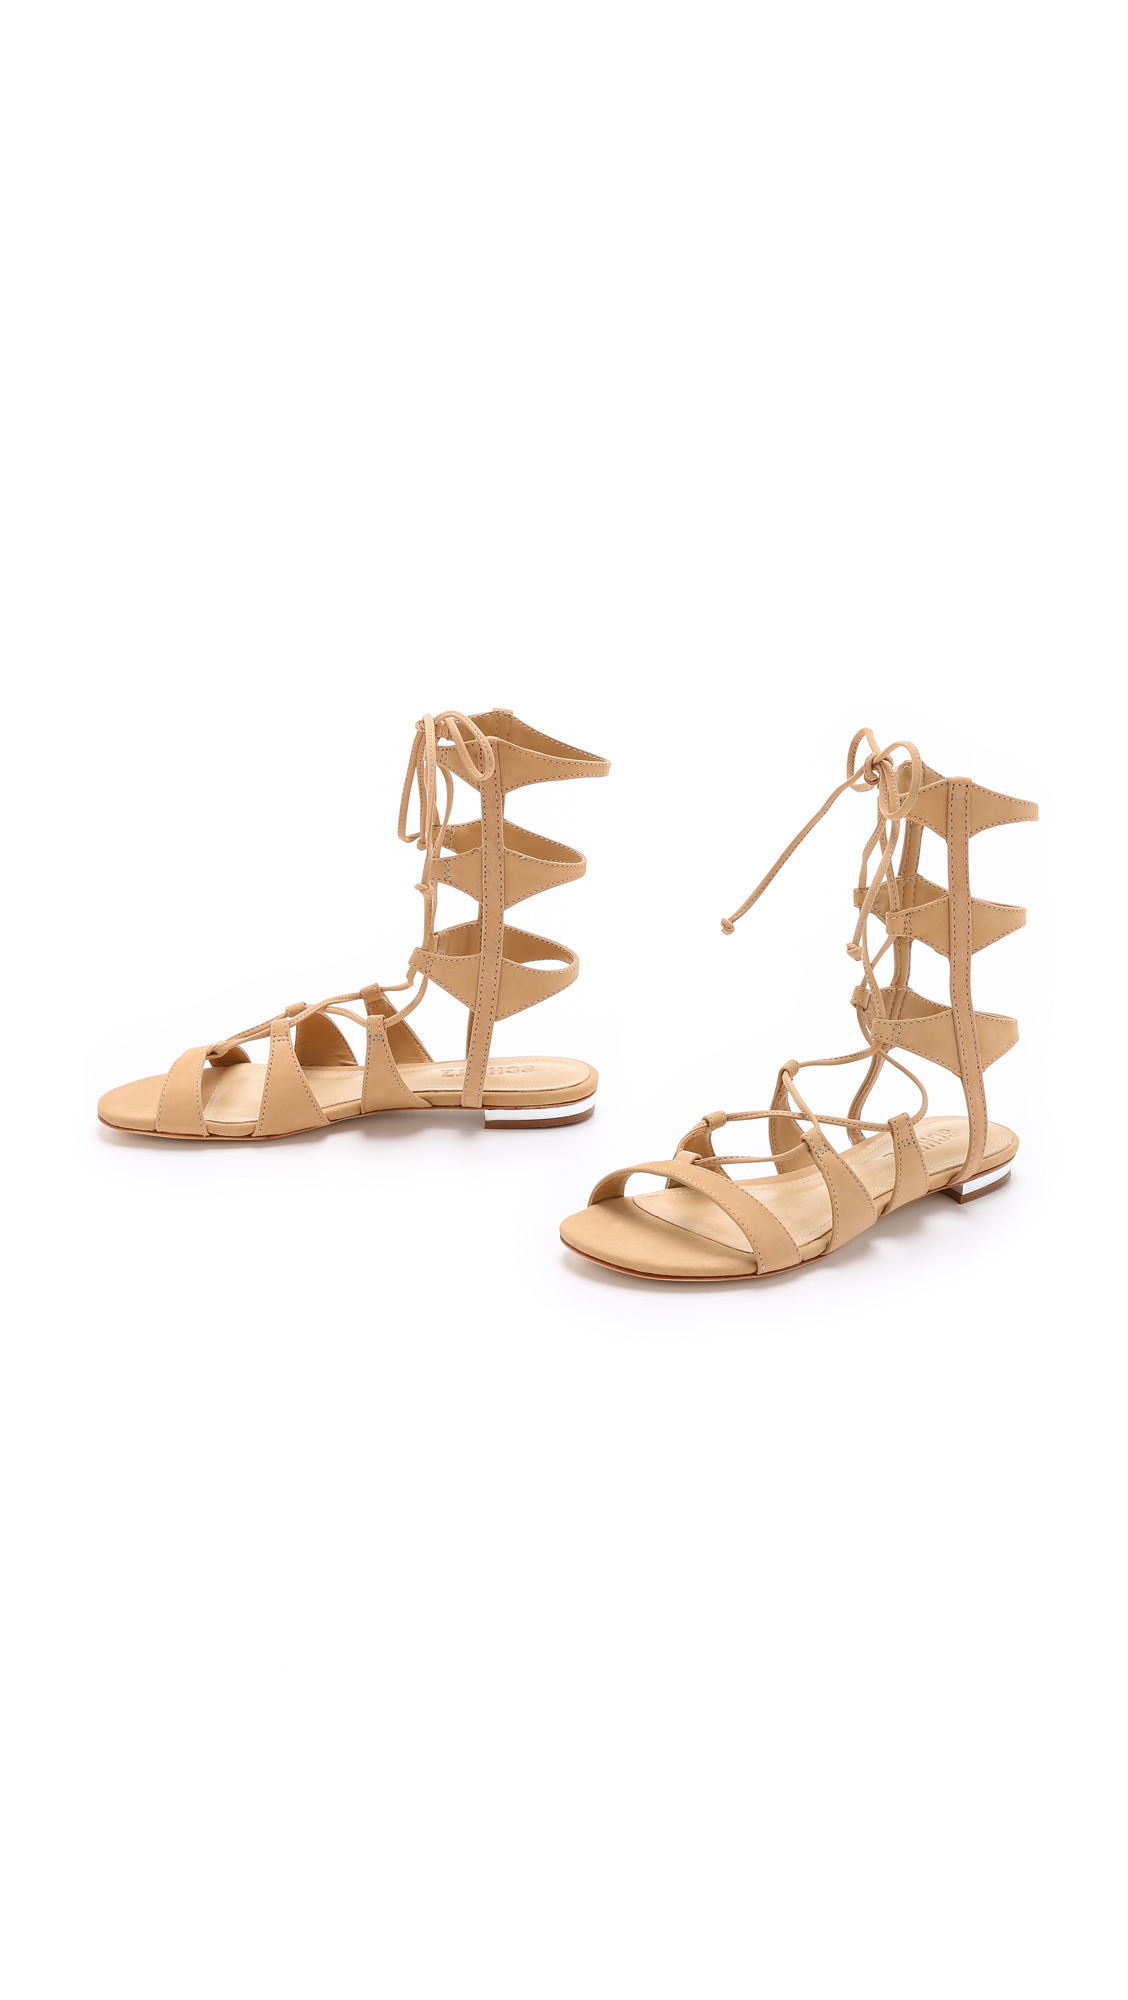 03f17eb31e76 Lyst - Schutz Erlina Lace Up Sandals - Light Wood in Natural